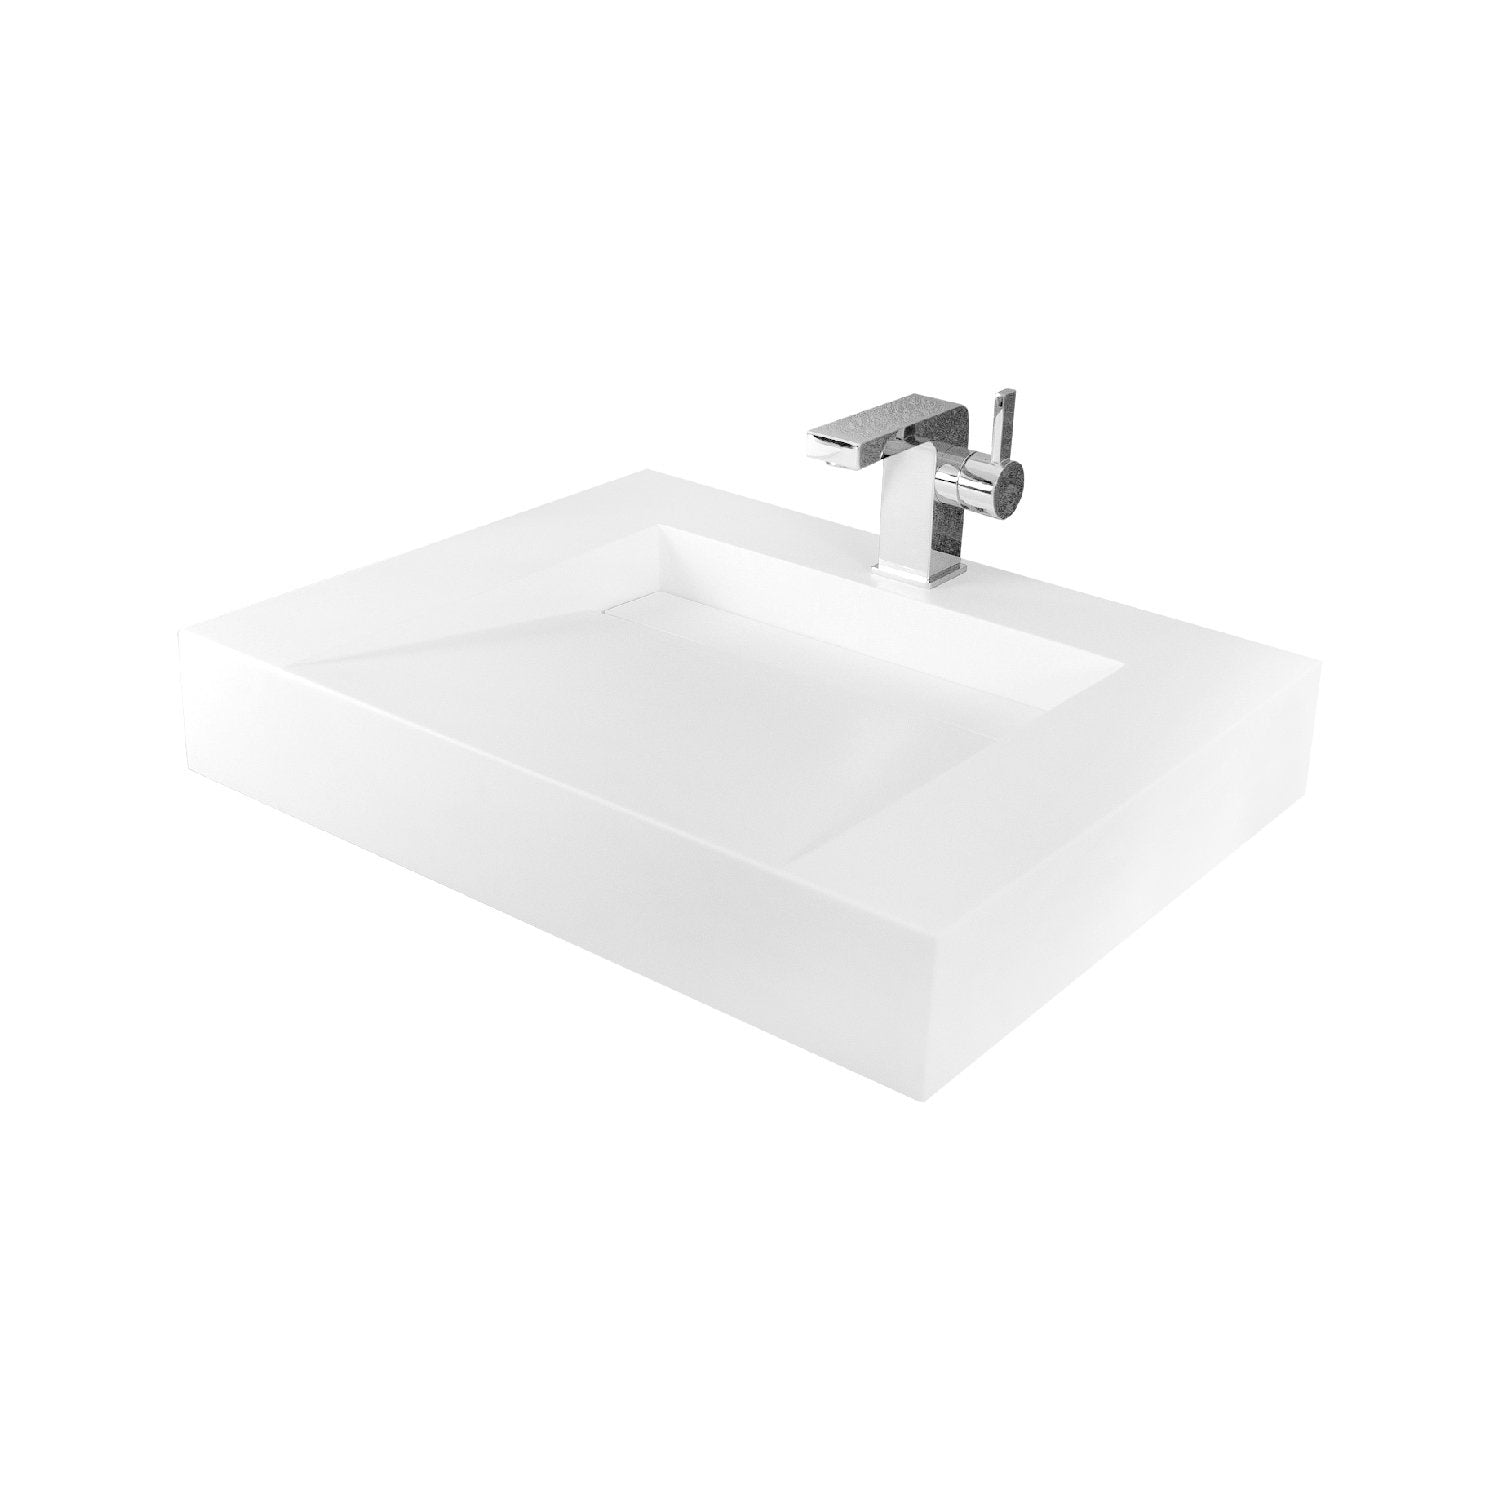 DAX Solid Surface Rectangle Single Bowl Wall Mount Bathroom Sink, White Matte Finish,  23-3/5 x 18-1/2 x 4 Inches (DAX-AB-1379)